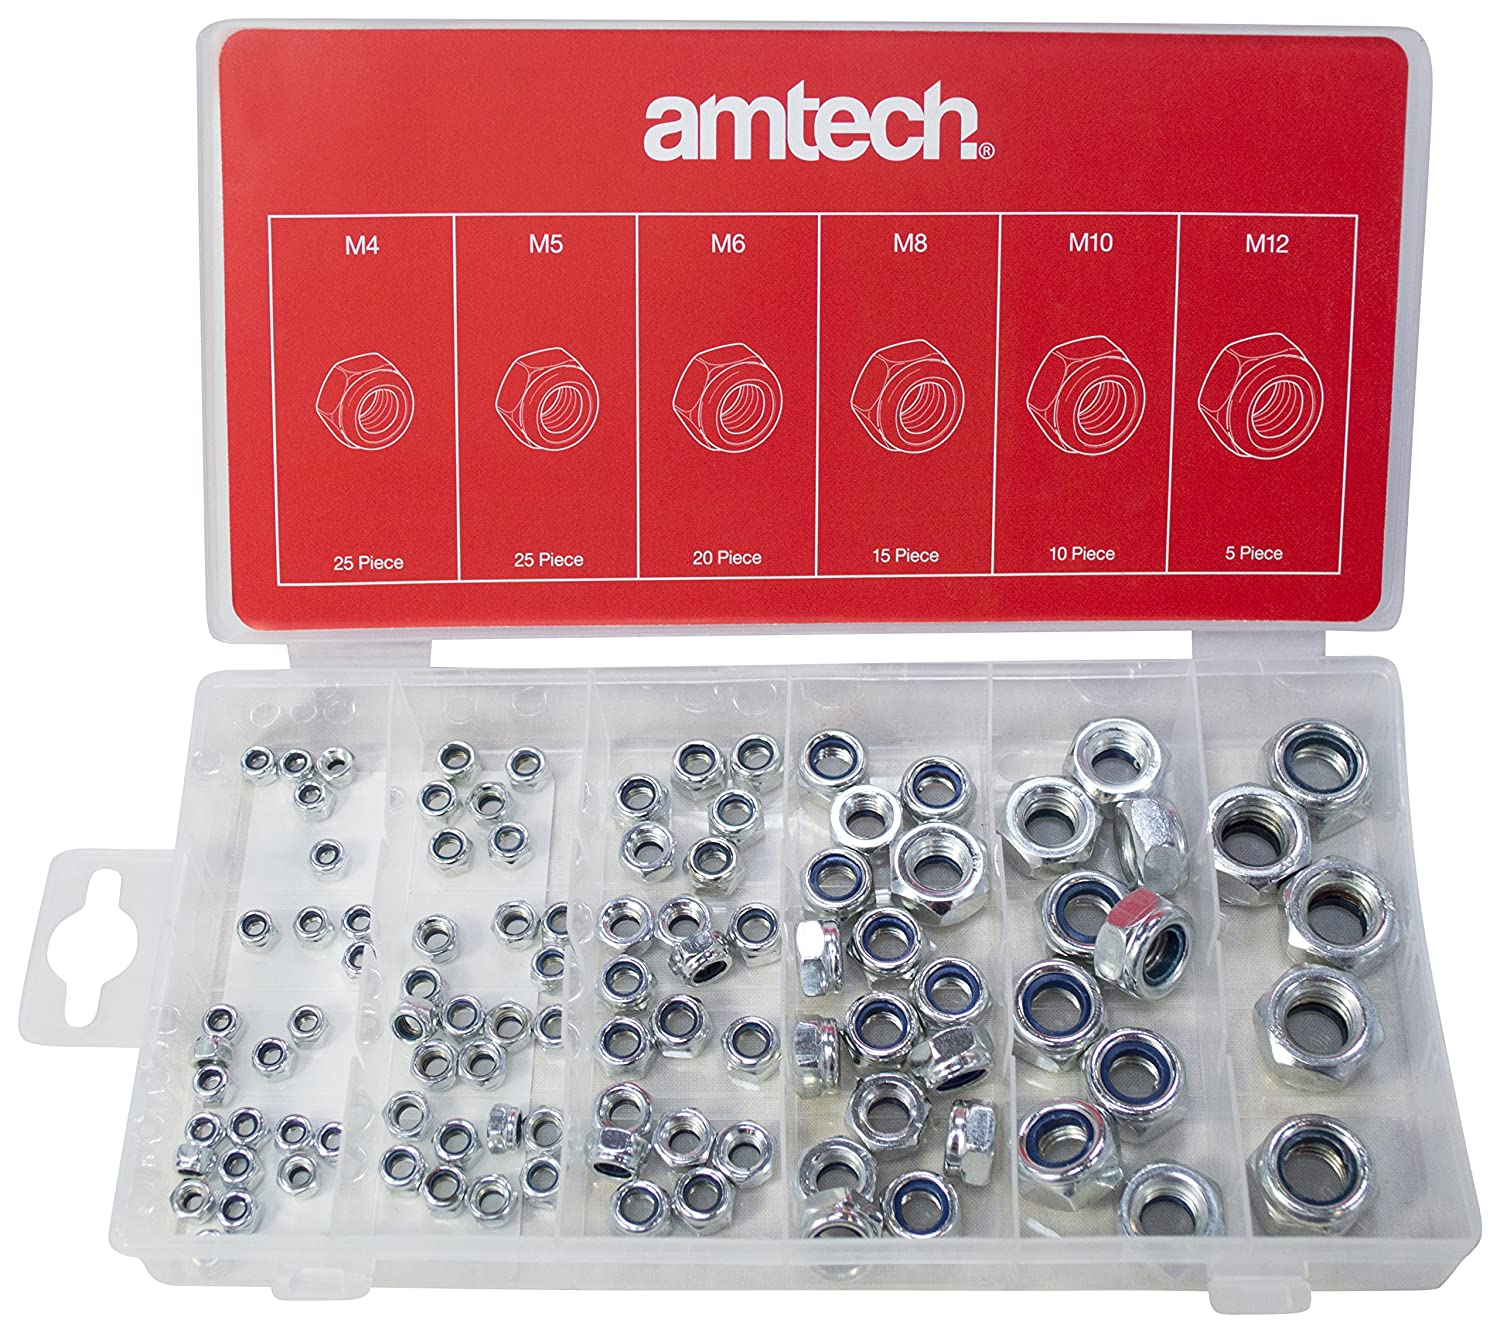 Amtech S6220 Lock Nuts, 100-Piece AM-S6220